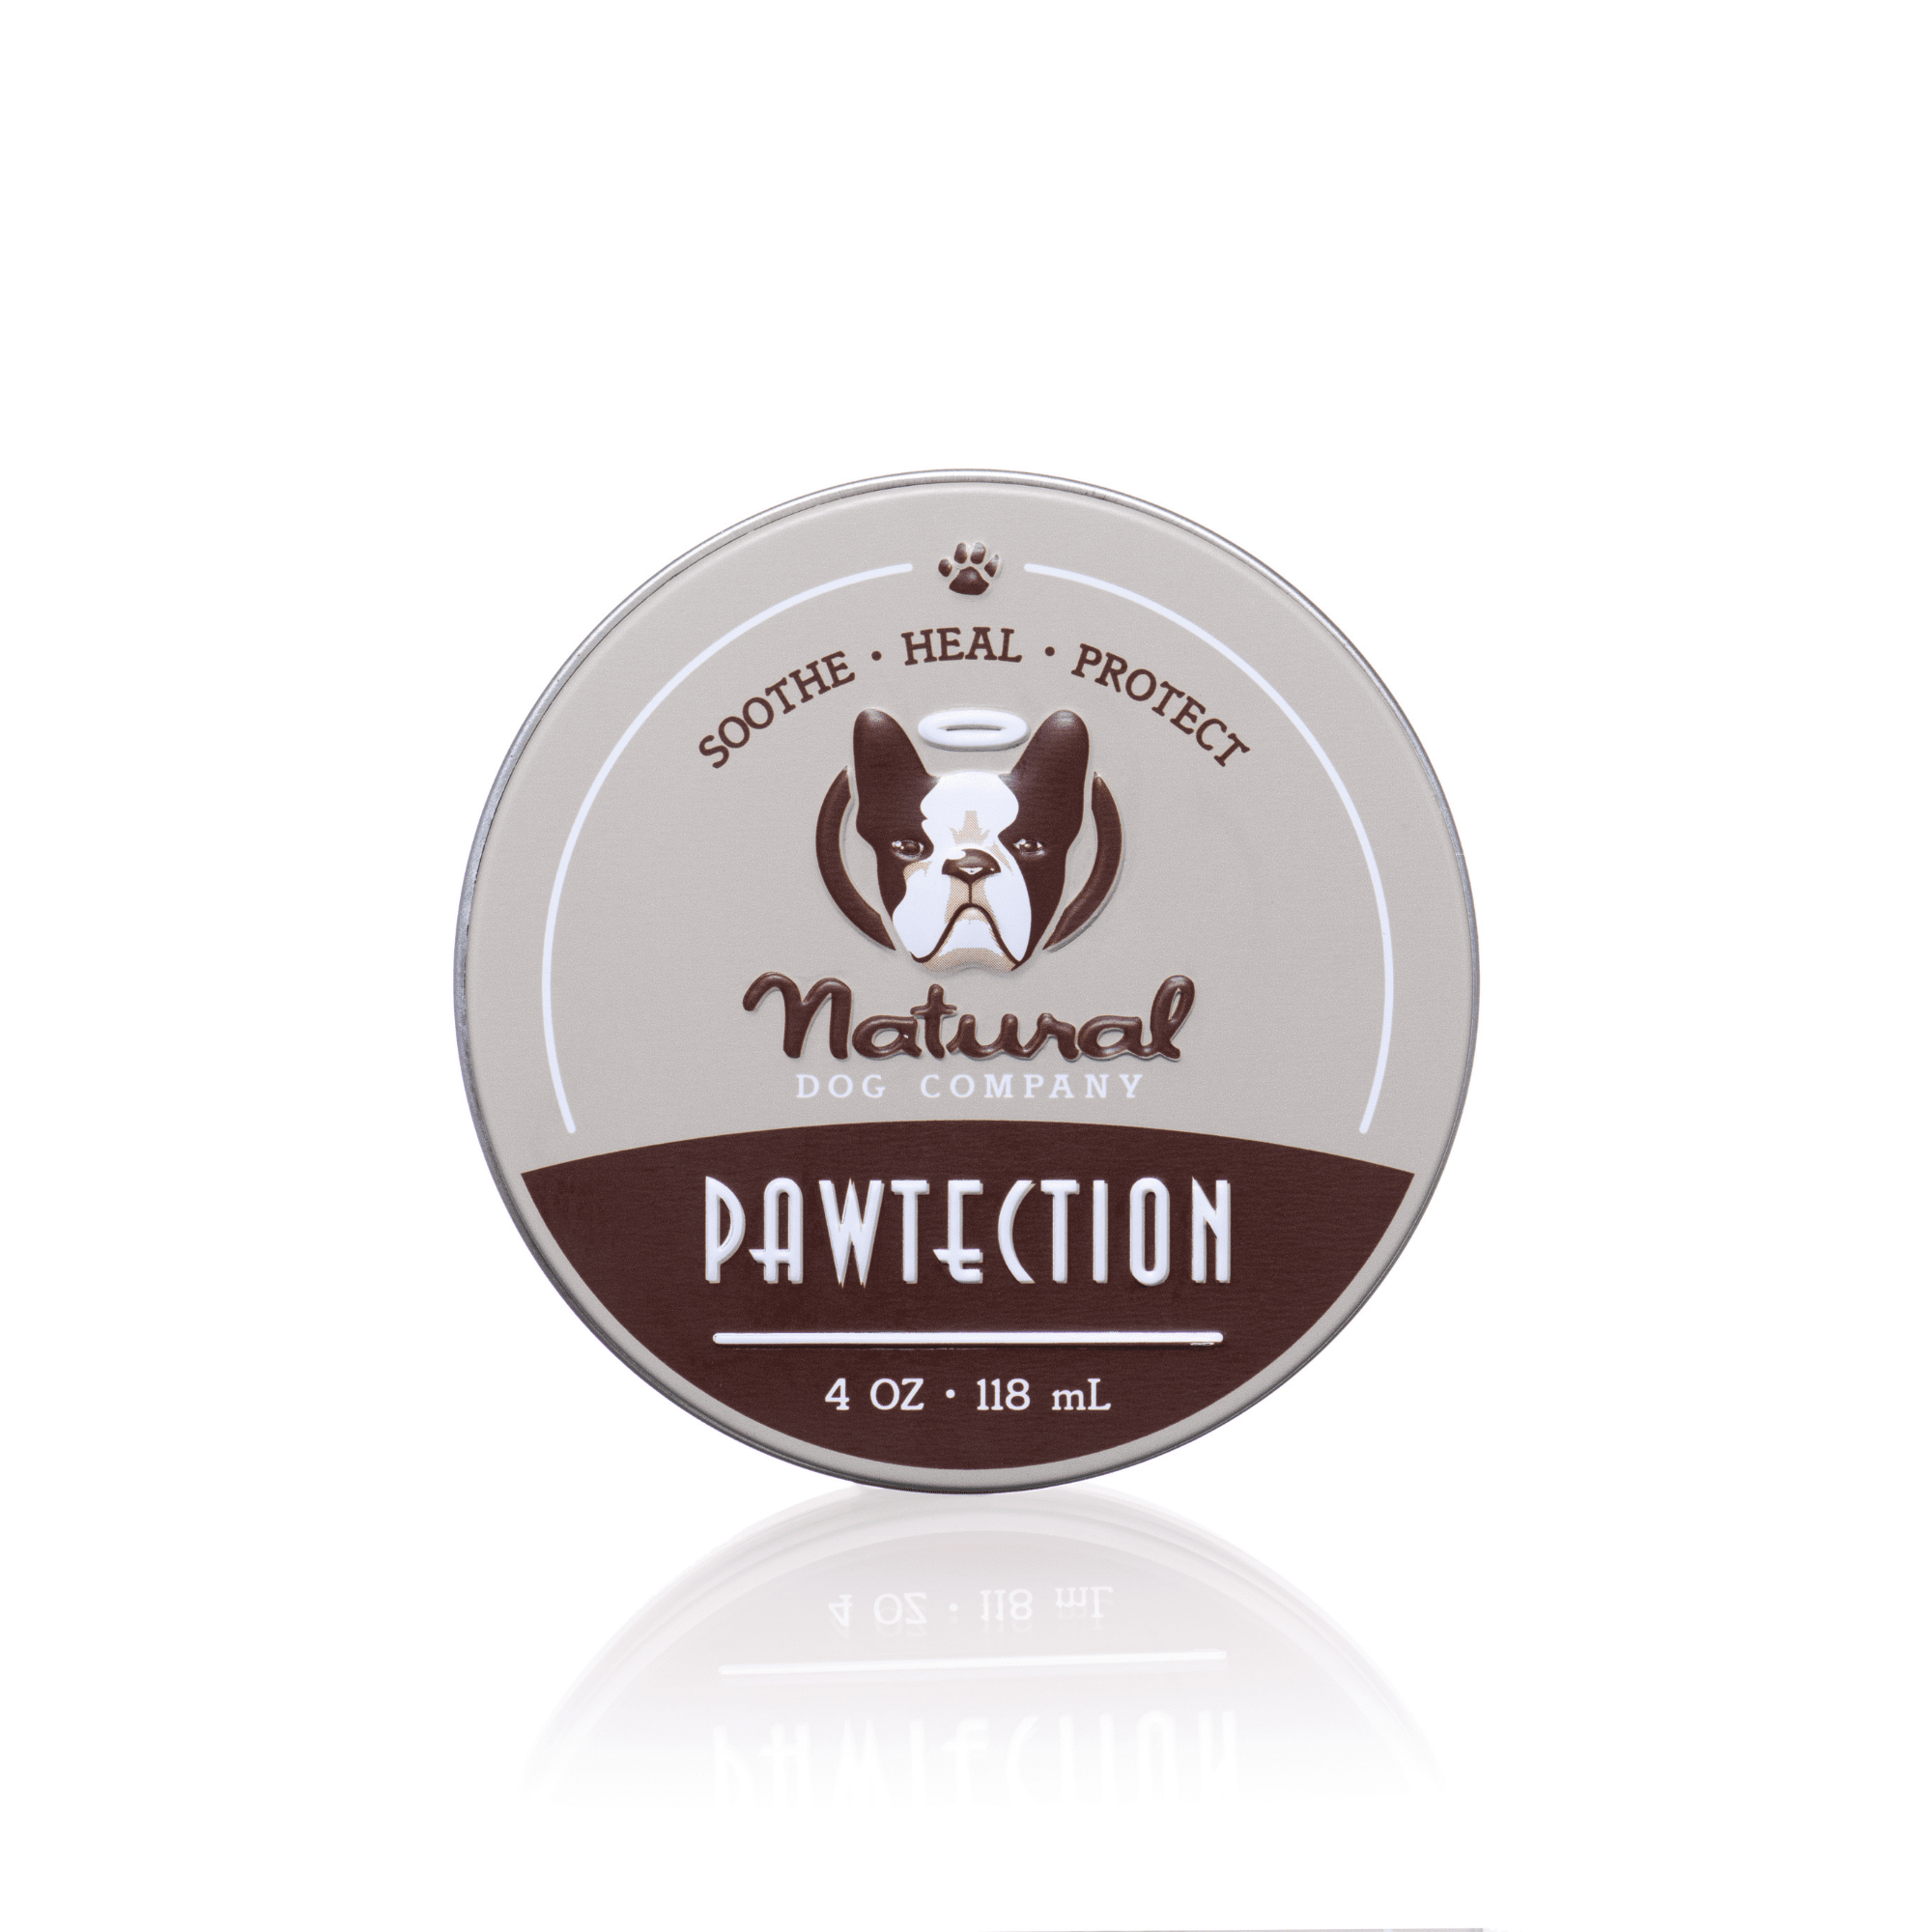 Natural Dog Company Pawtection 4oz tin